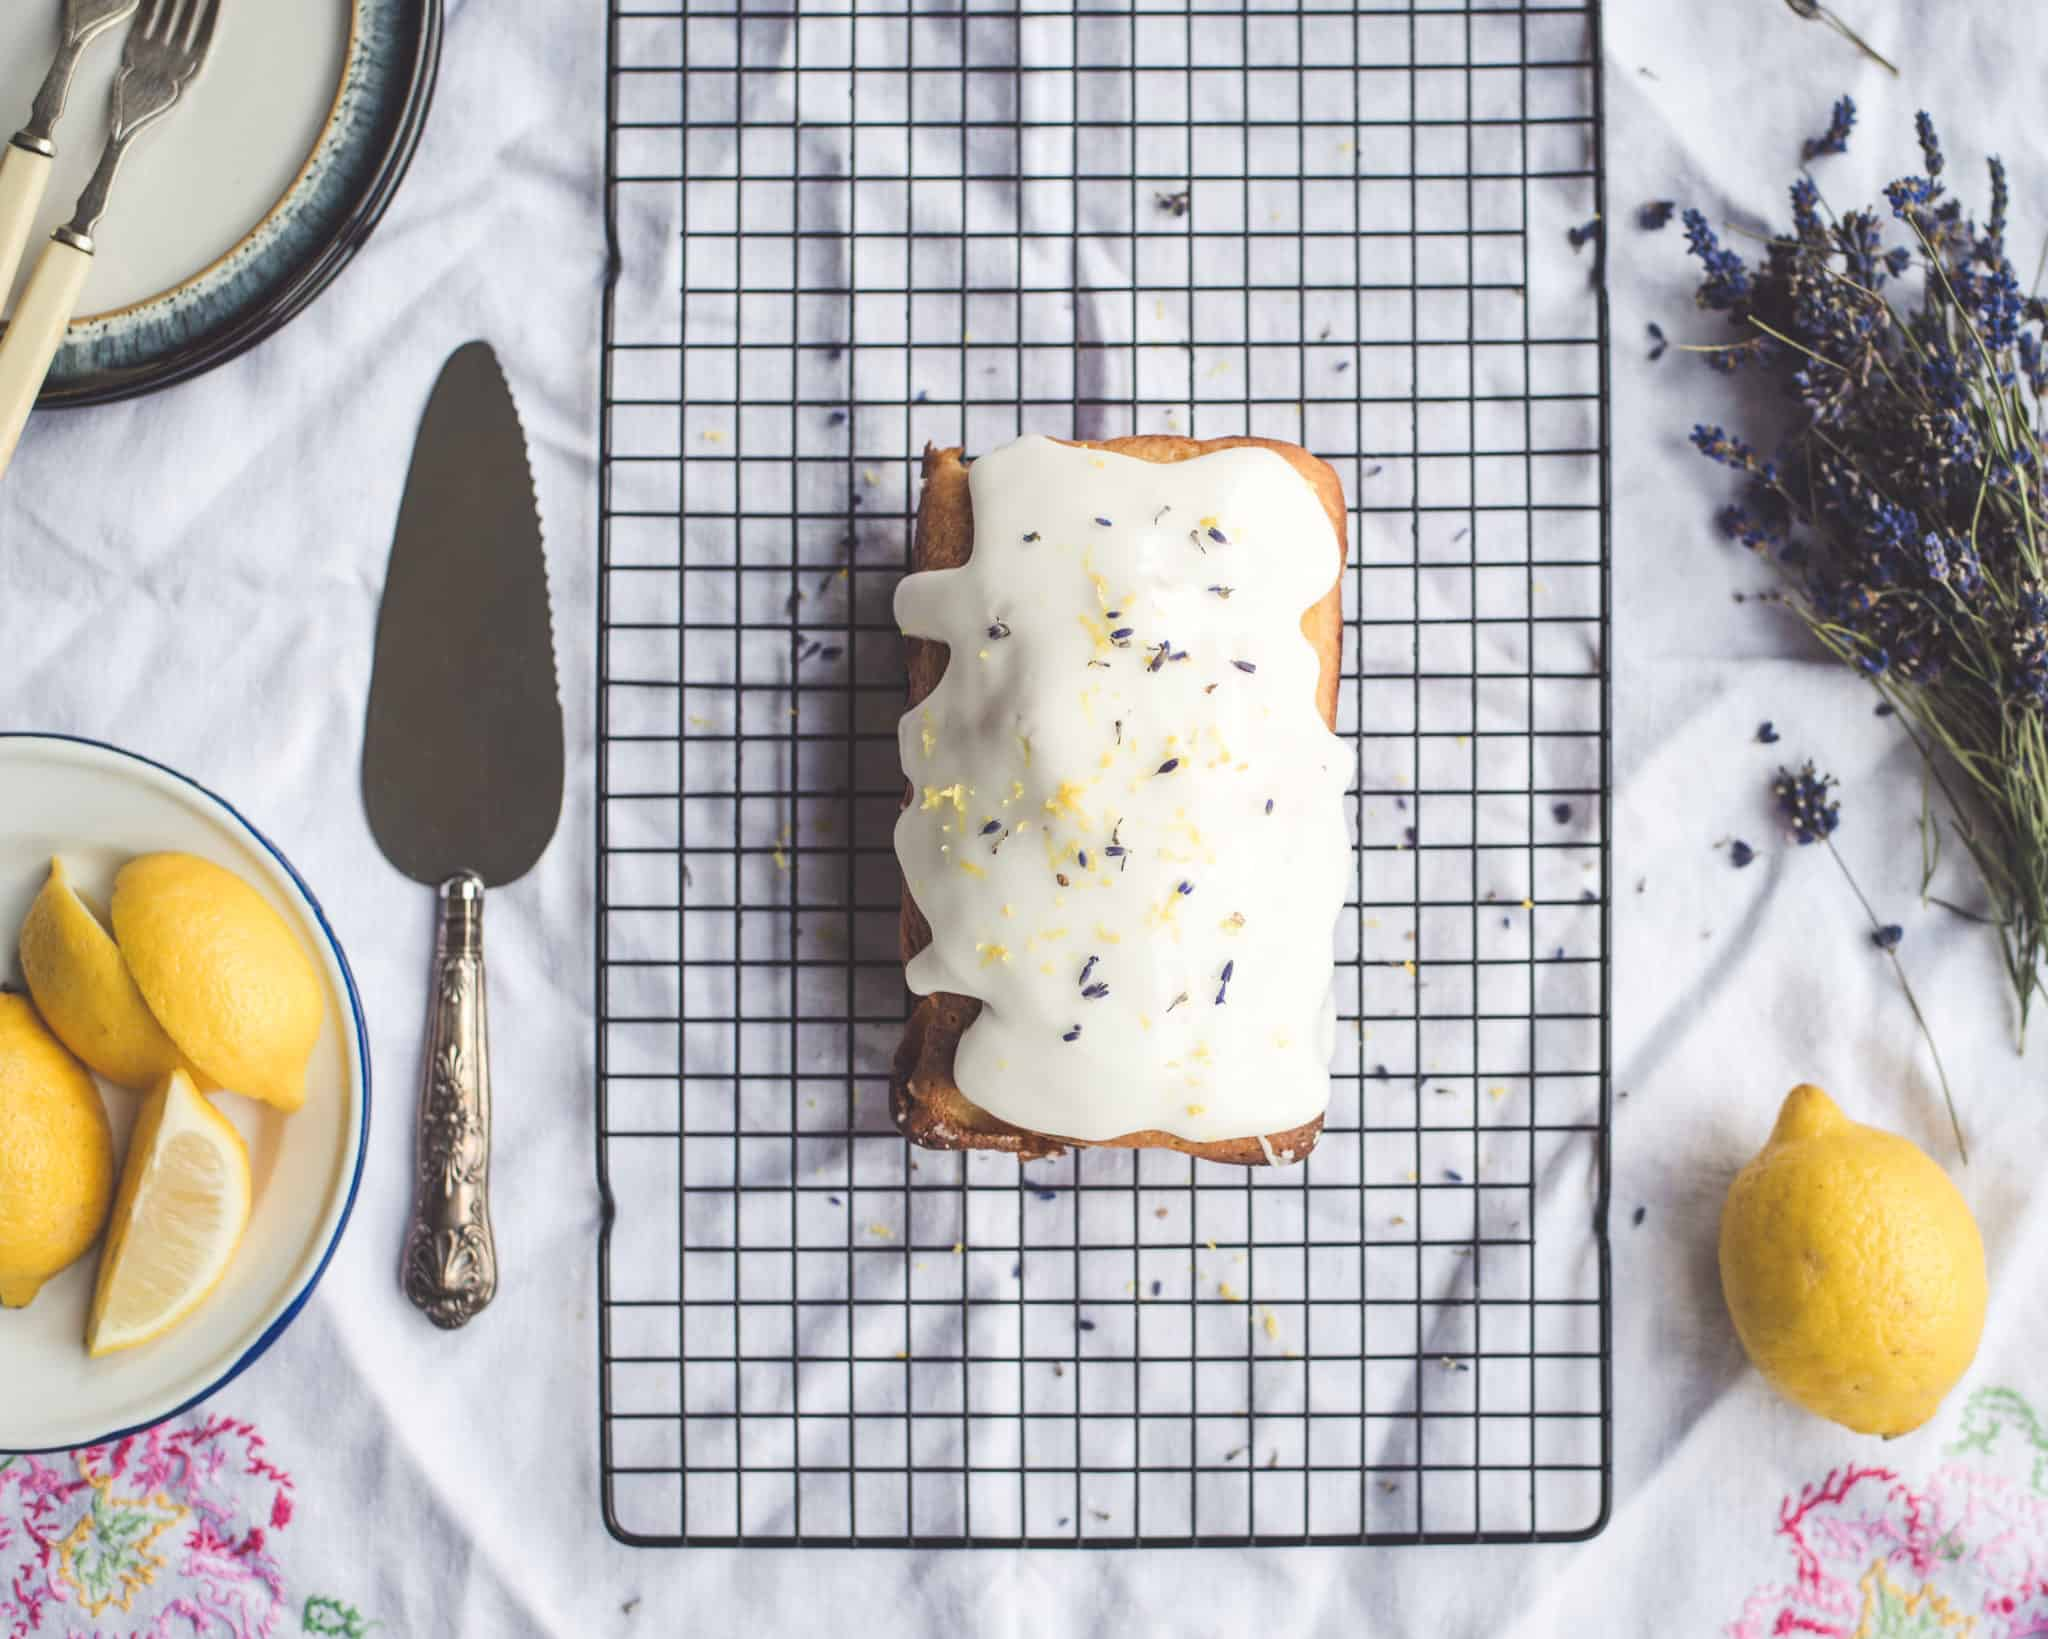 How to Make Low-Calorie Lemon Cake with Vanilla Protein Icing